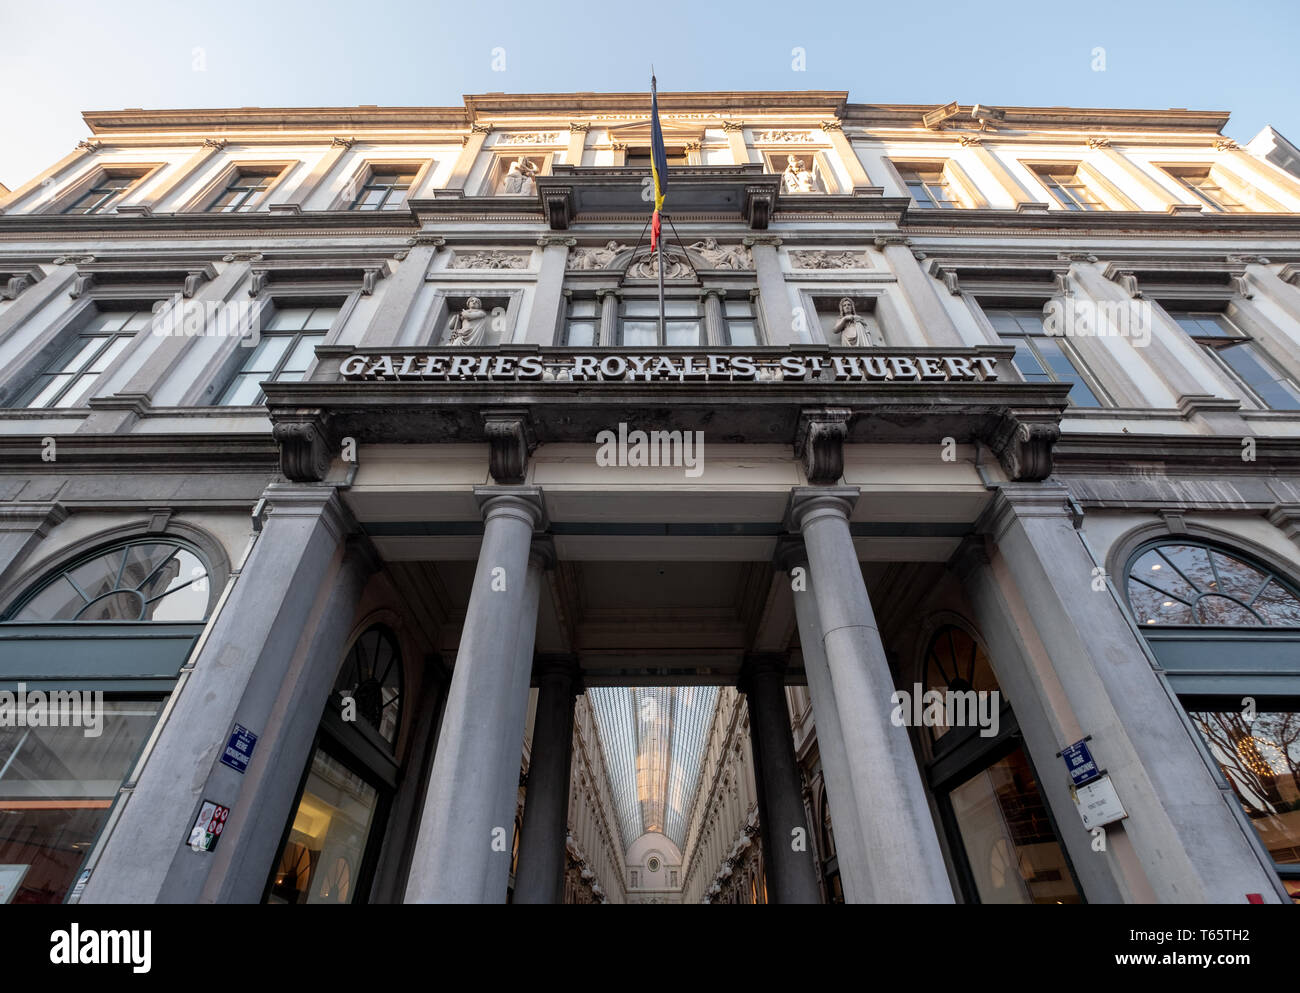 Galeries Royales Saint Hubert. Ornate nineteenth century shopping arcades in the centre of Brussels. Photographed from the outside. - Stock Image